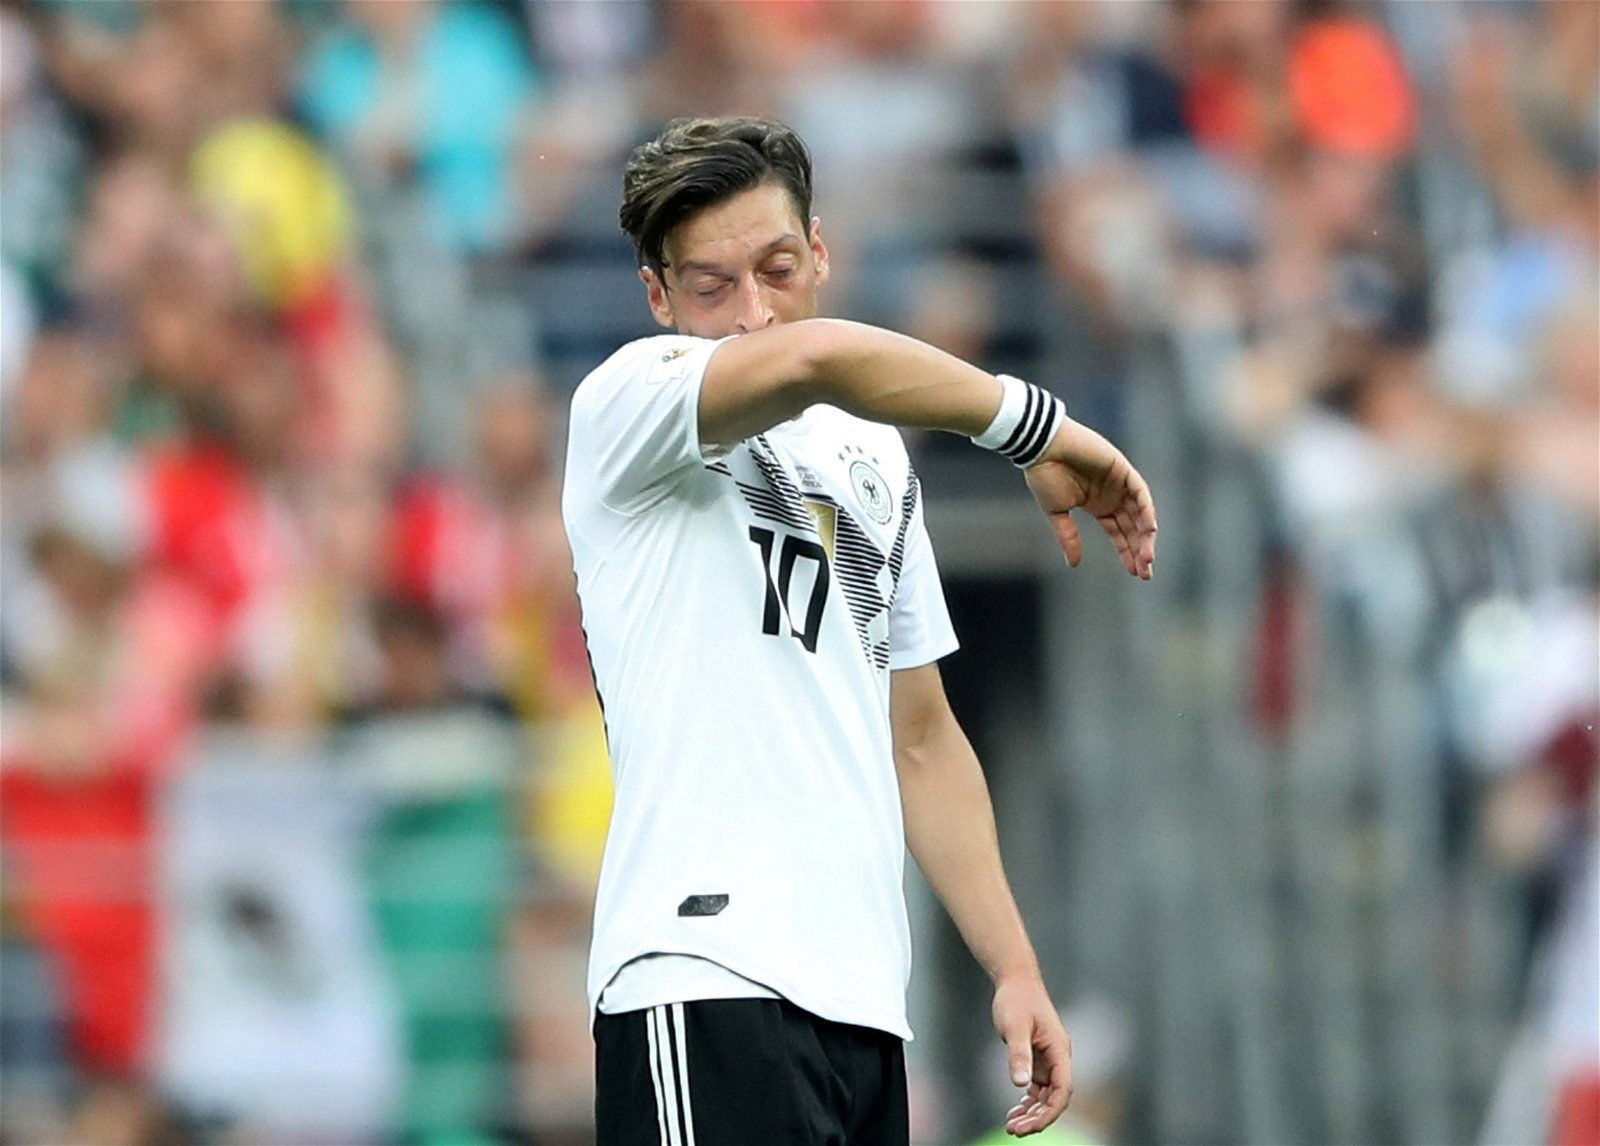 Mesut Ozil in action for Germany in their World Cup clash against Mexico